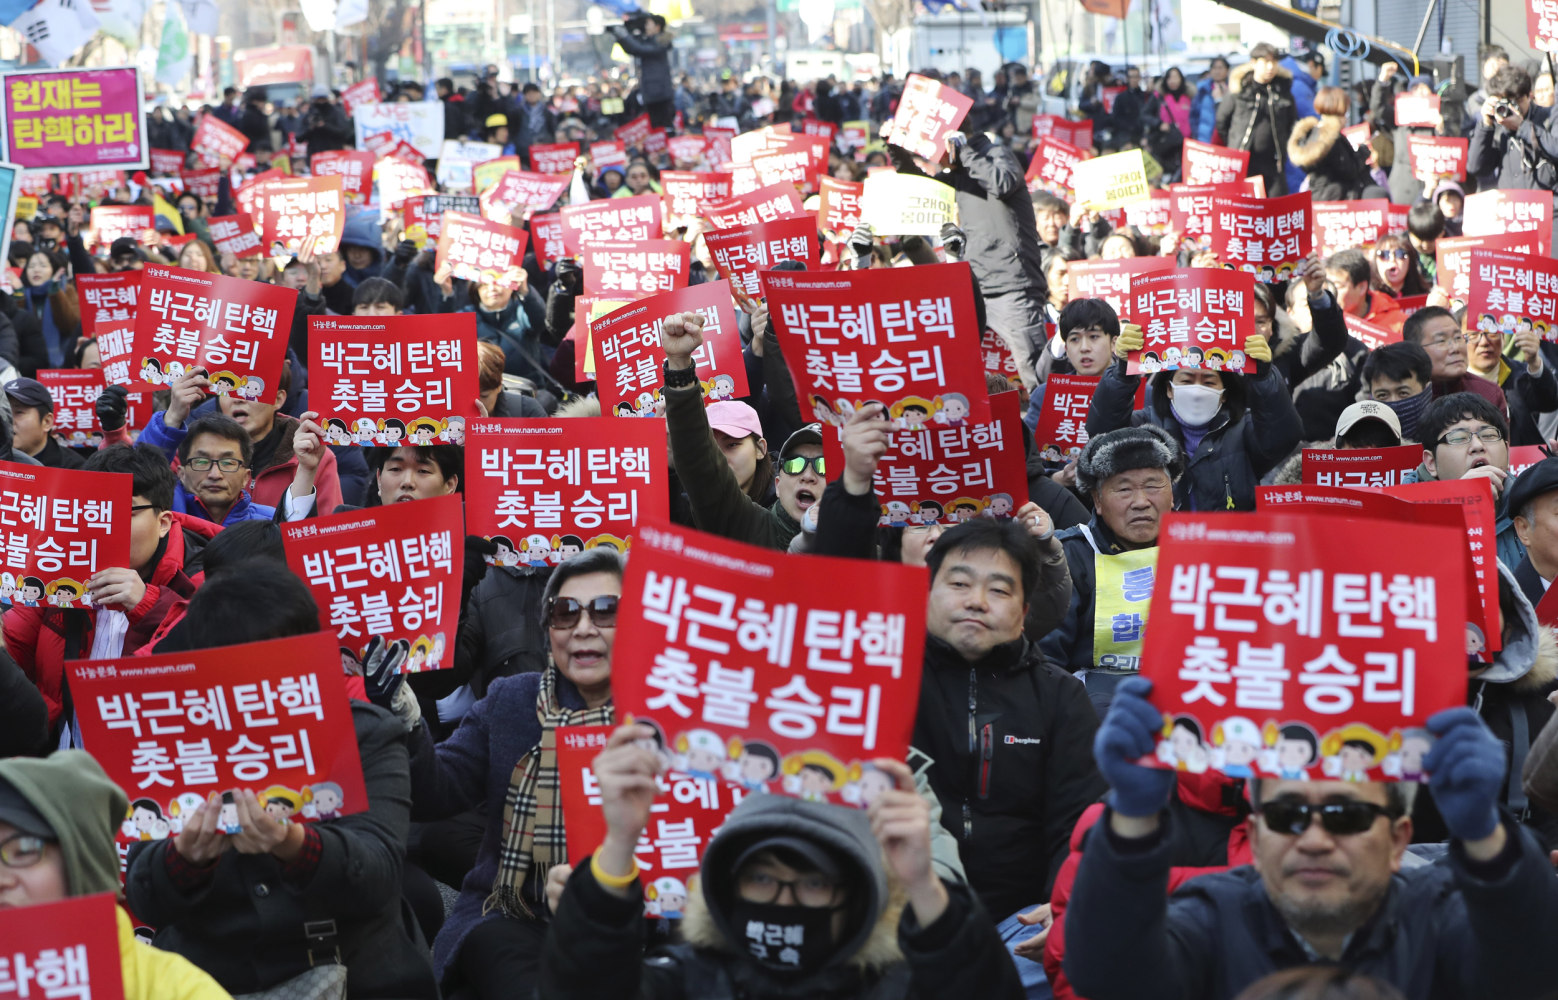 Two People Have Died in Protests Following Park Geun-hye's Impeachment